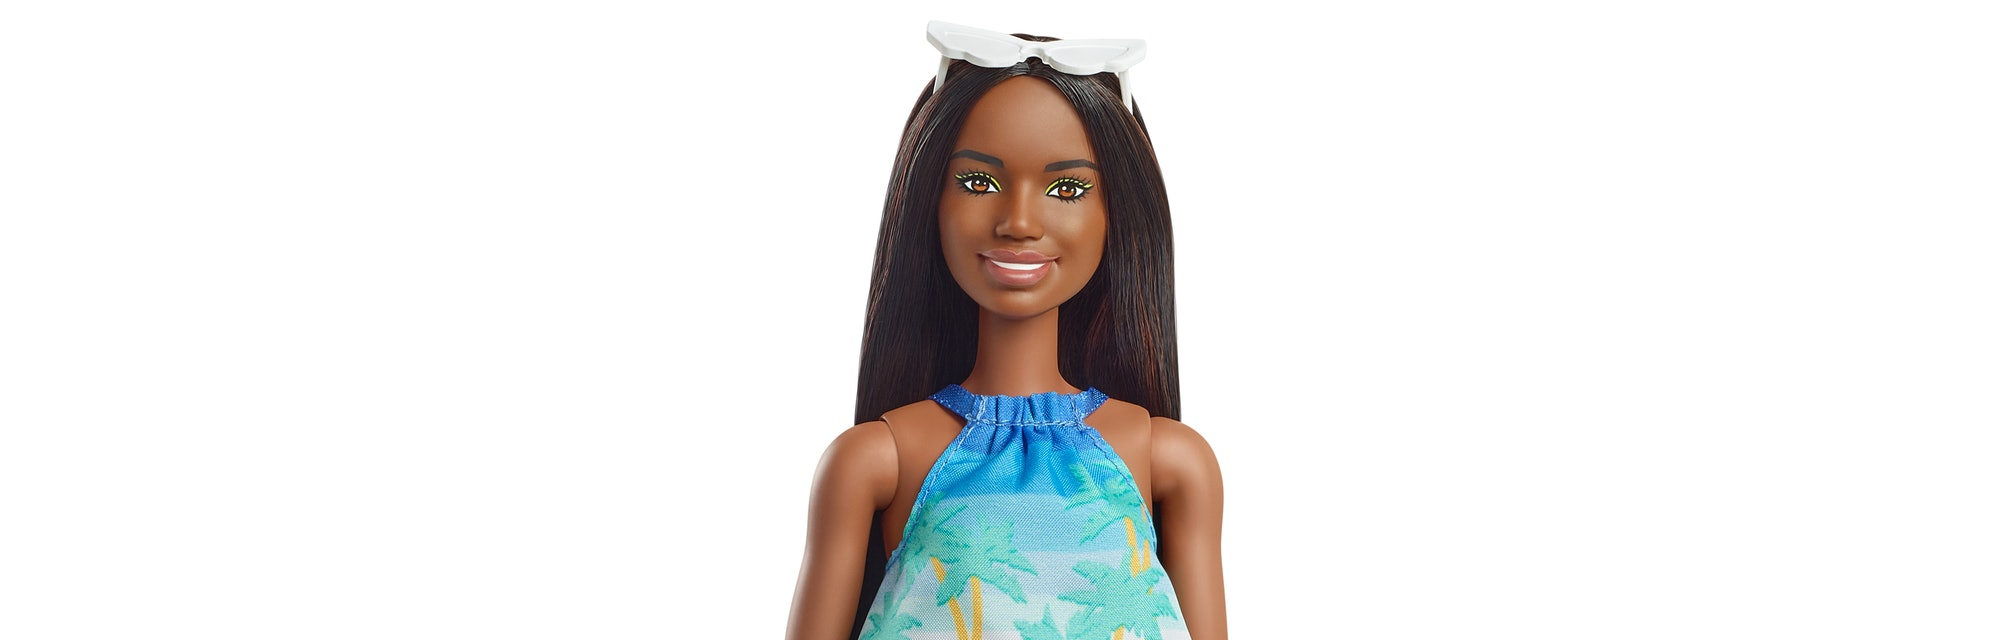 The Barbie Loves The Ocean collection is made of sustainable plastic.